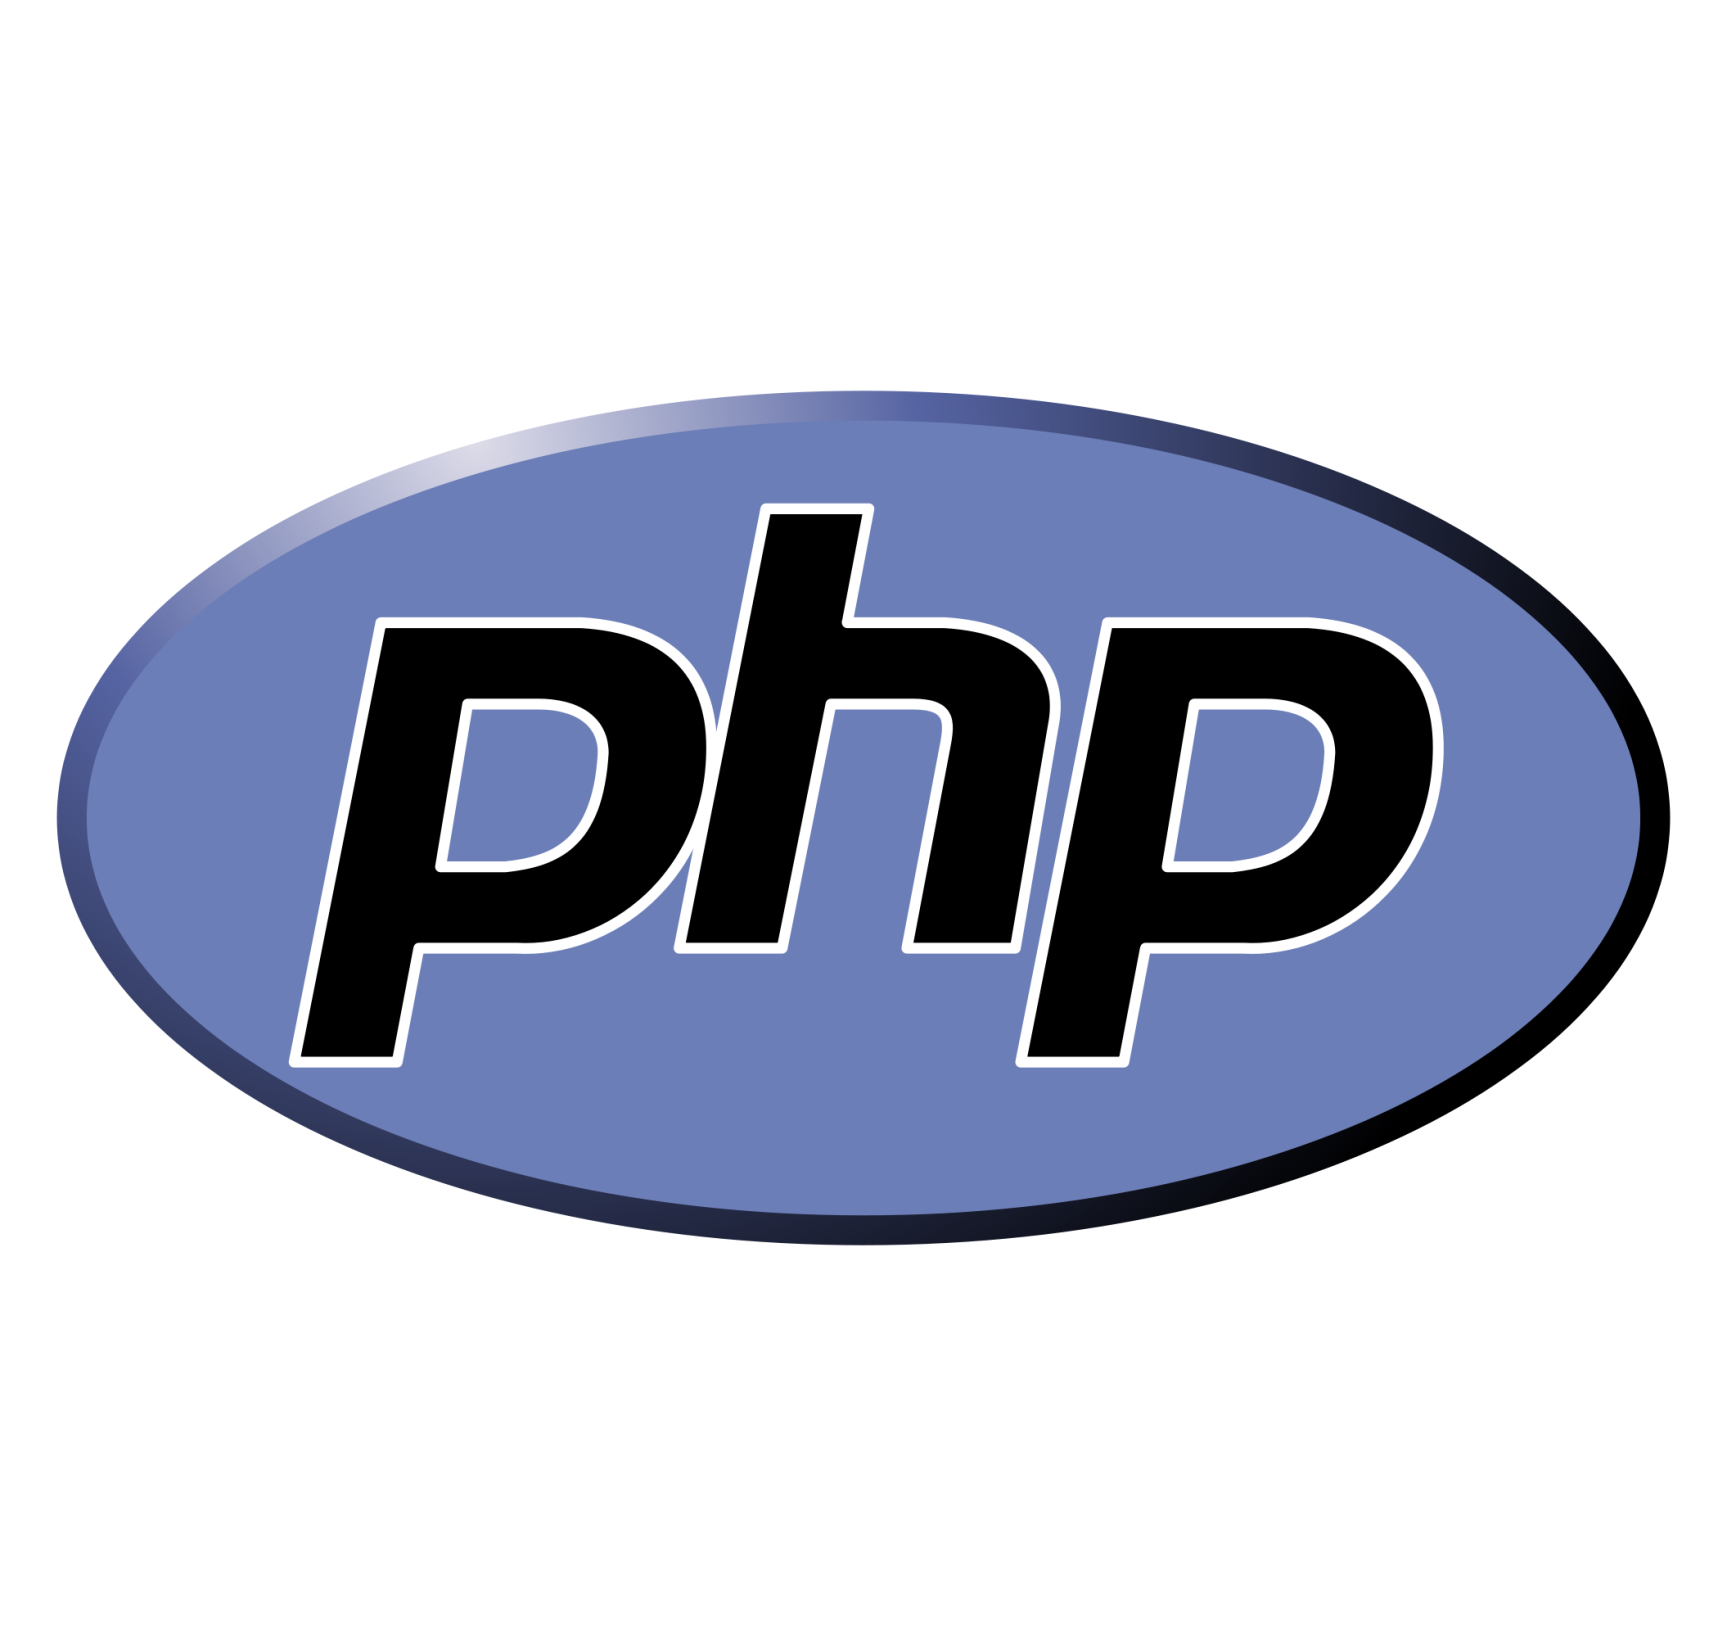 php training course